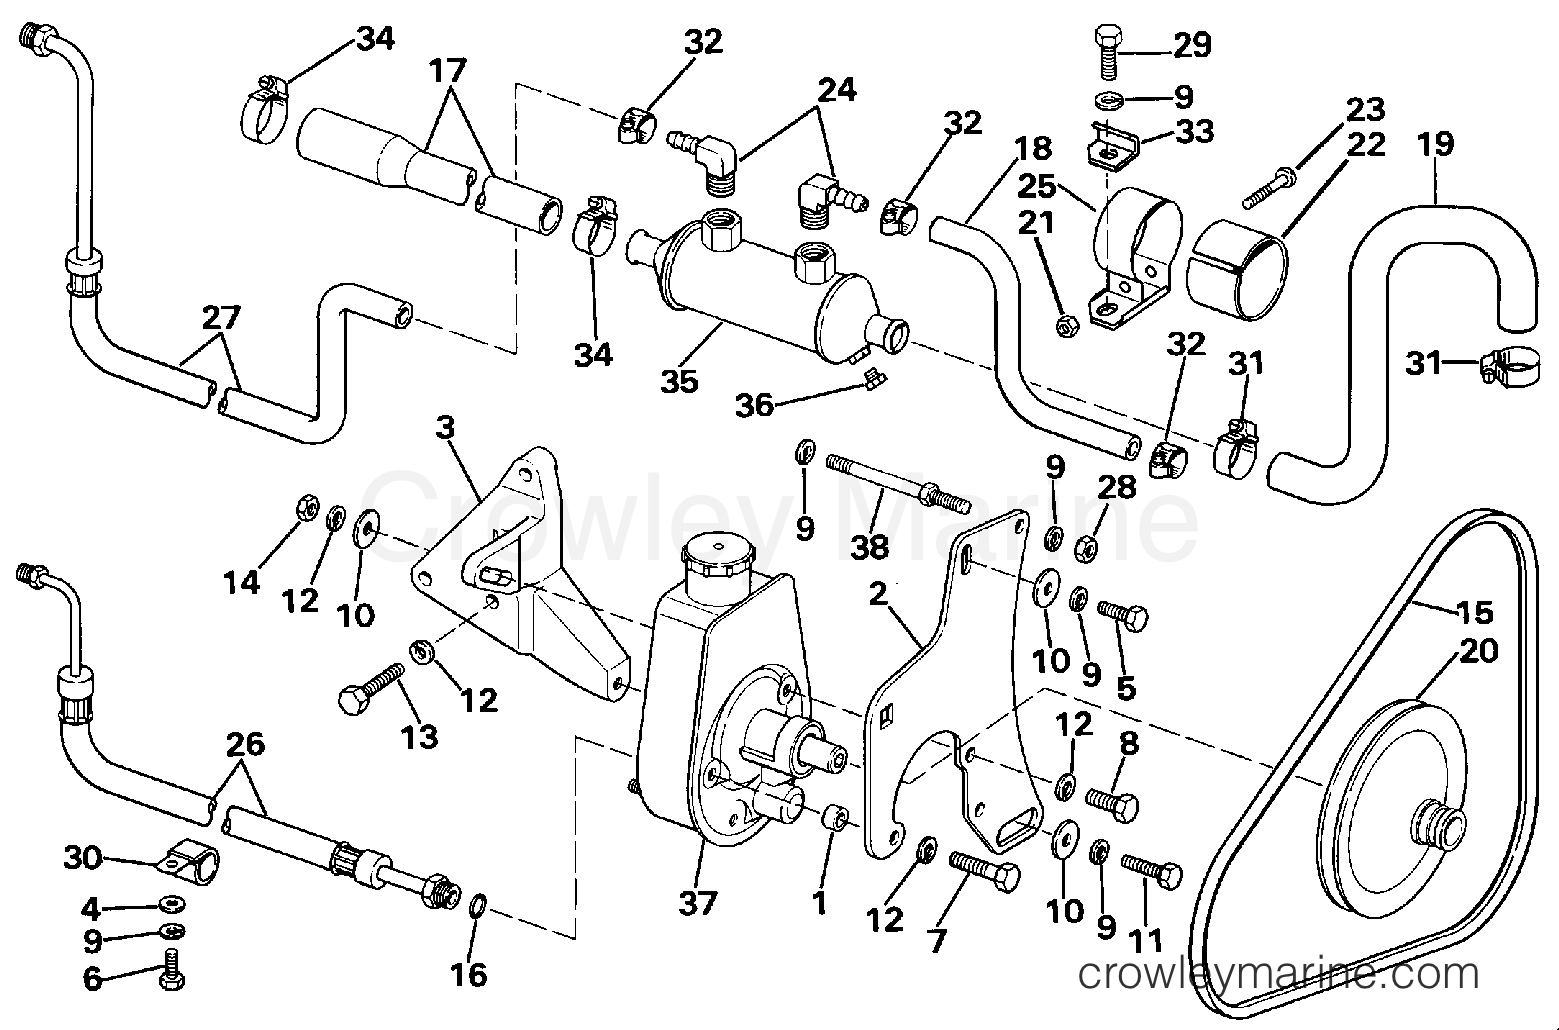 1988 OMC Stern Drive 2.3 - 232AMRGDE POWER STEERING PUMP section